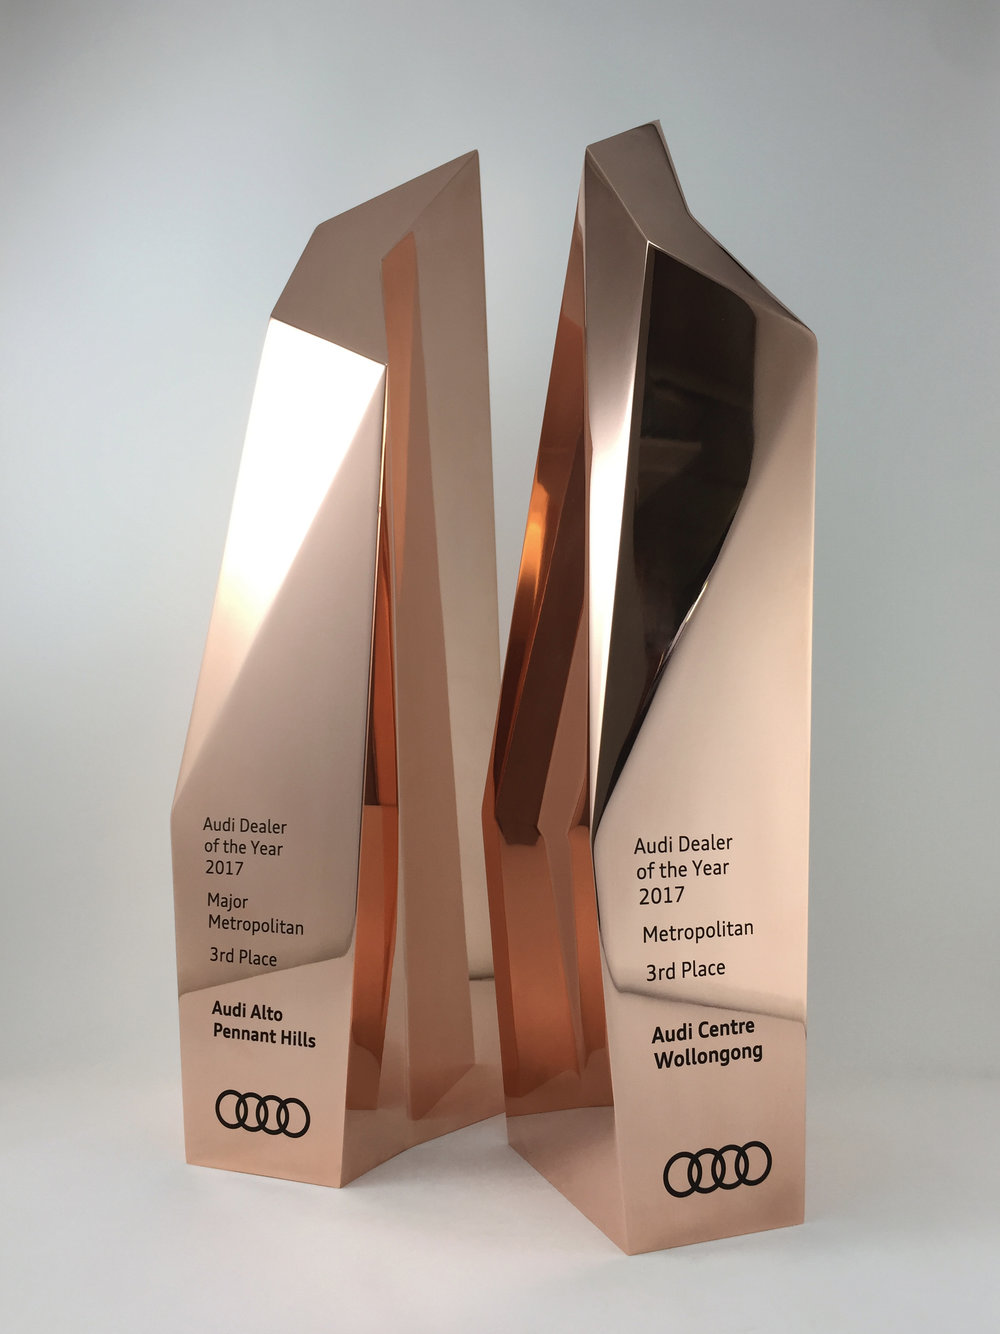 audi-metal-art-sculpture-award-trophy-02.jpg